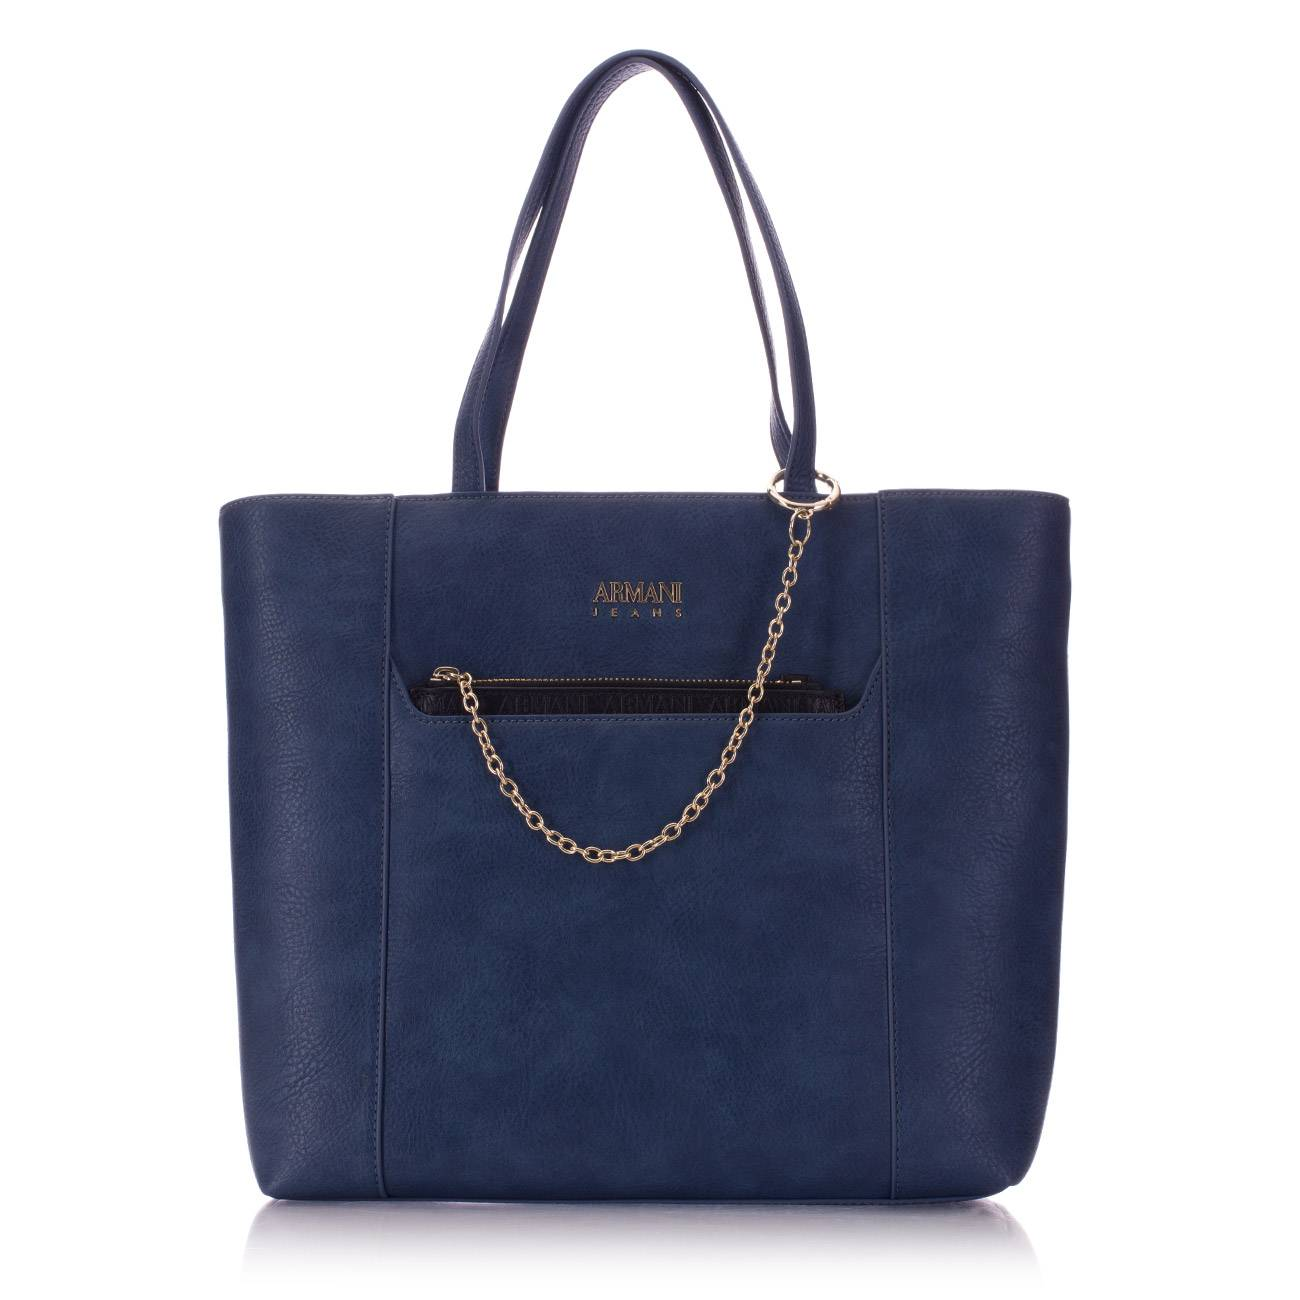 OCEAN BLUE SHOPPER